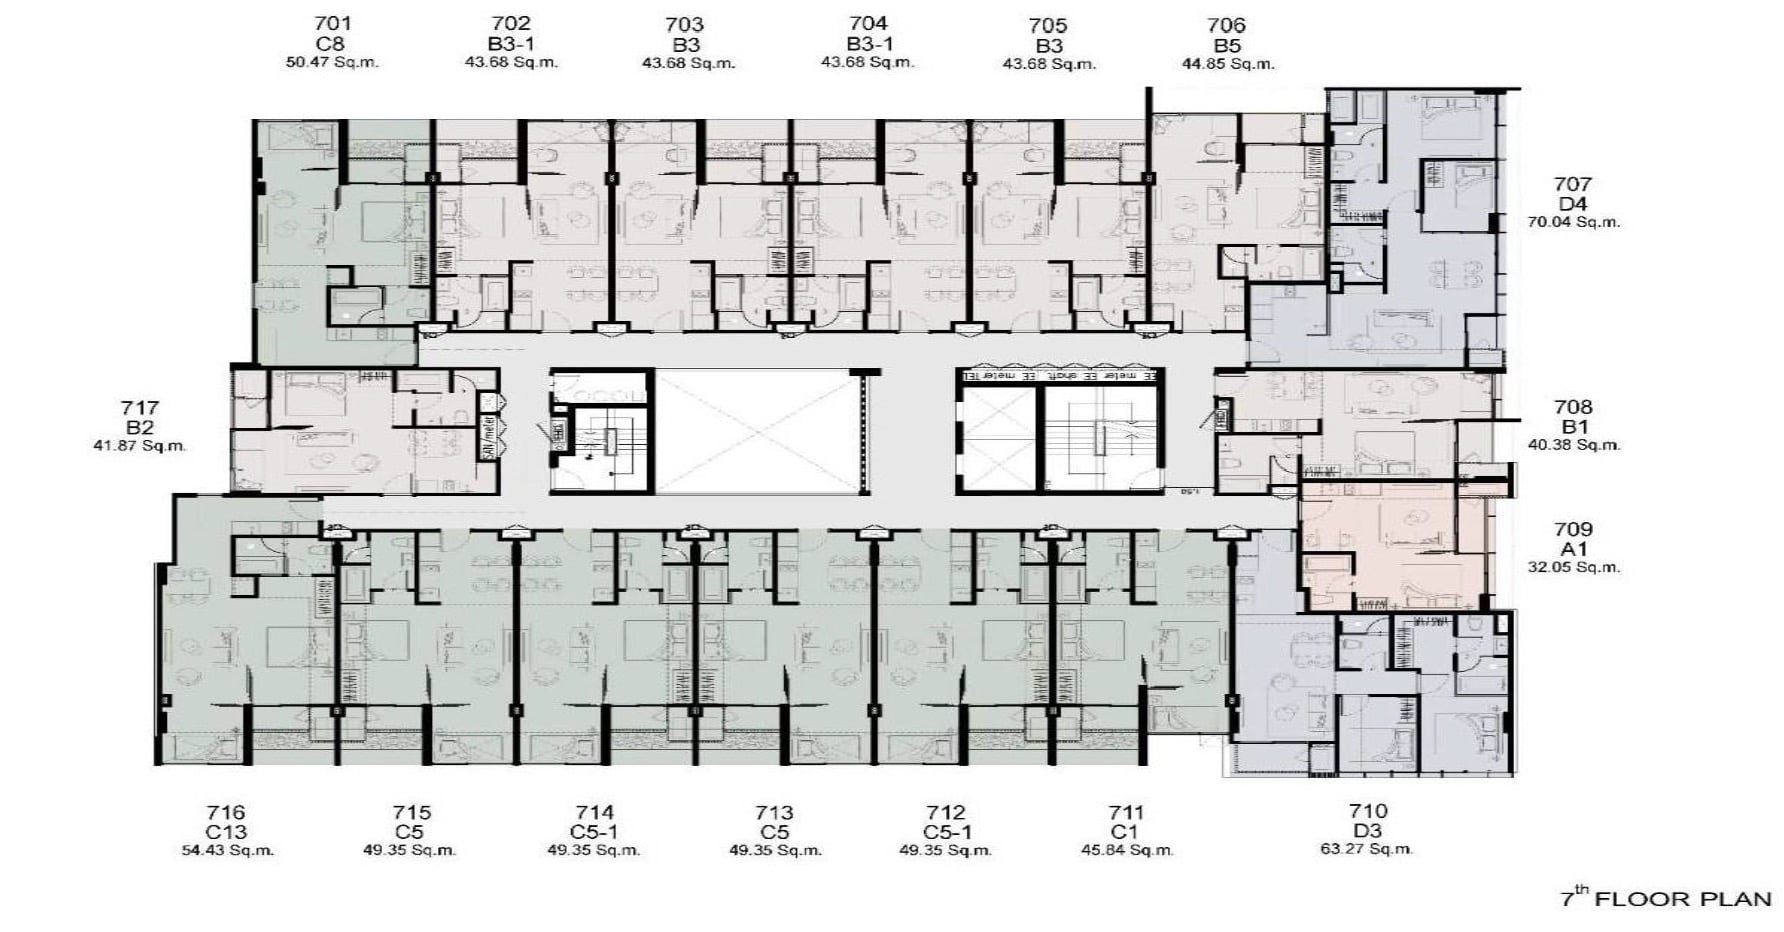 Walden Thonglo 8 - FloorPlan 7th